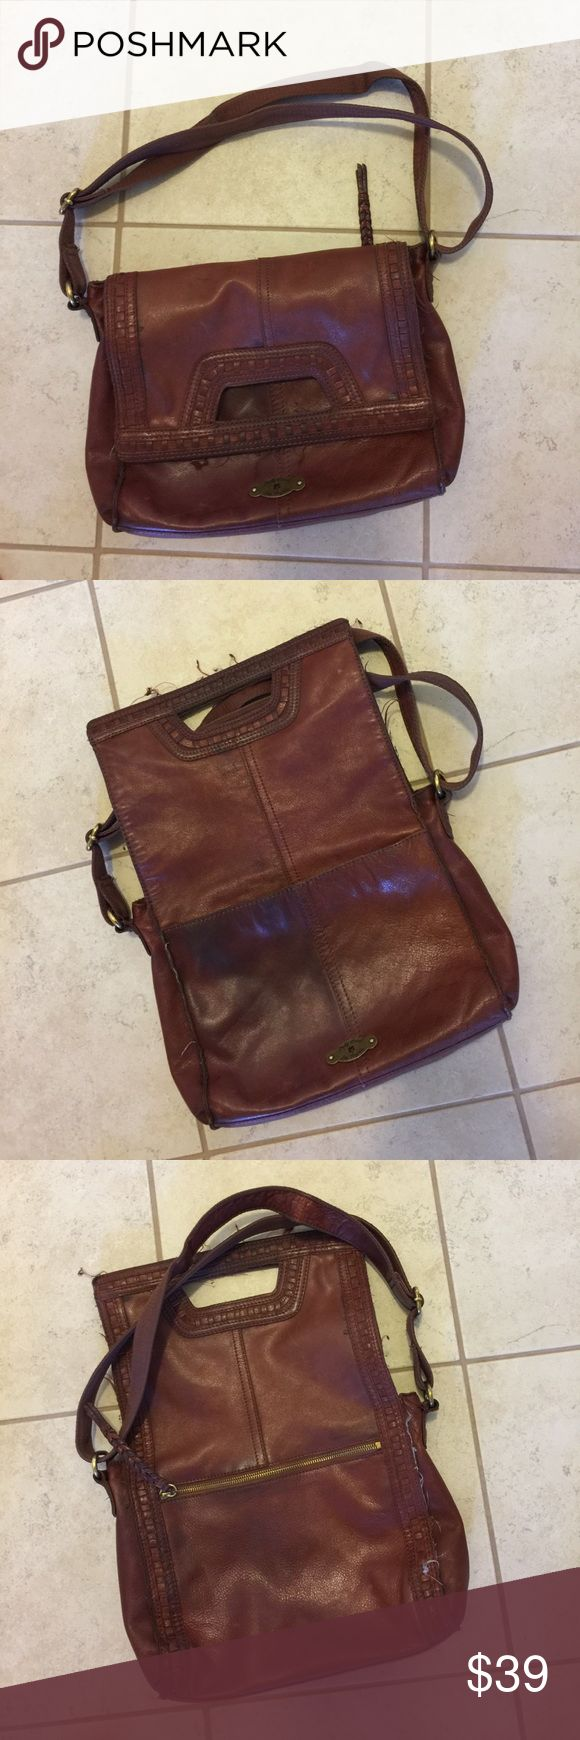 Lucky purse Looks good just needs strings trimmed no holes is aging beautifully Lucky Brand Bags Crossbody Bags